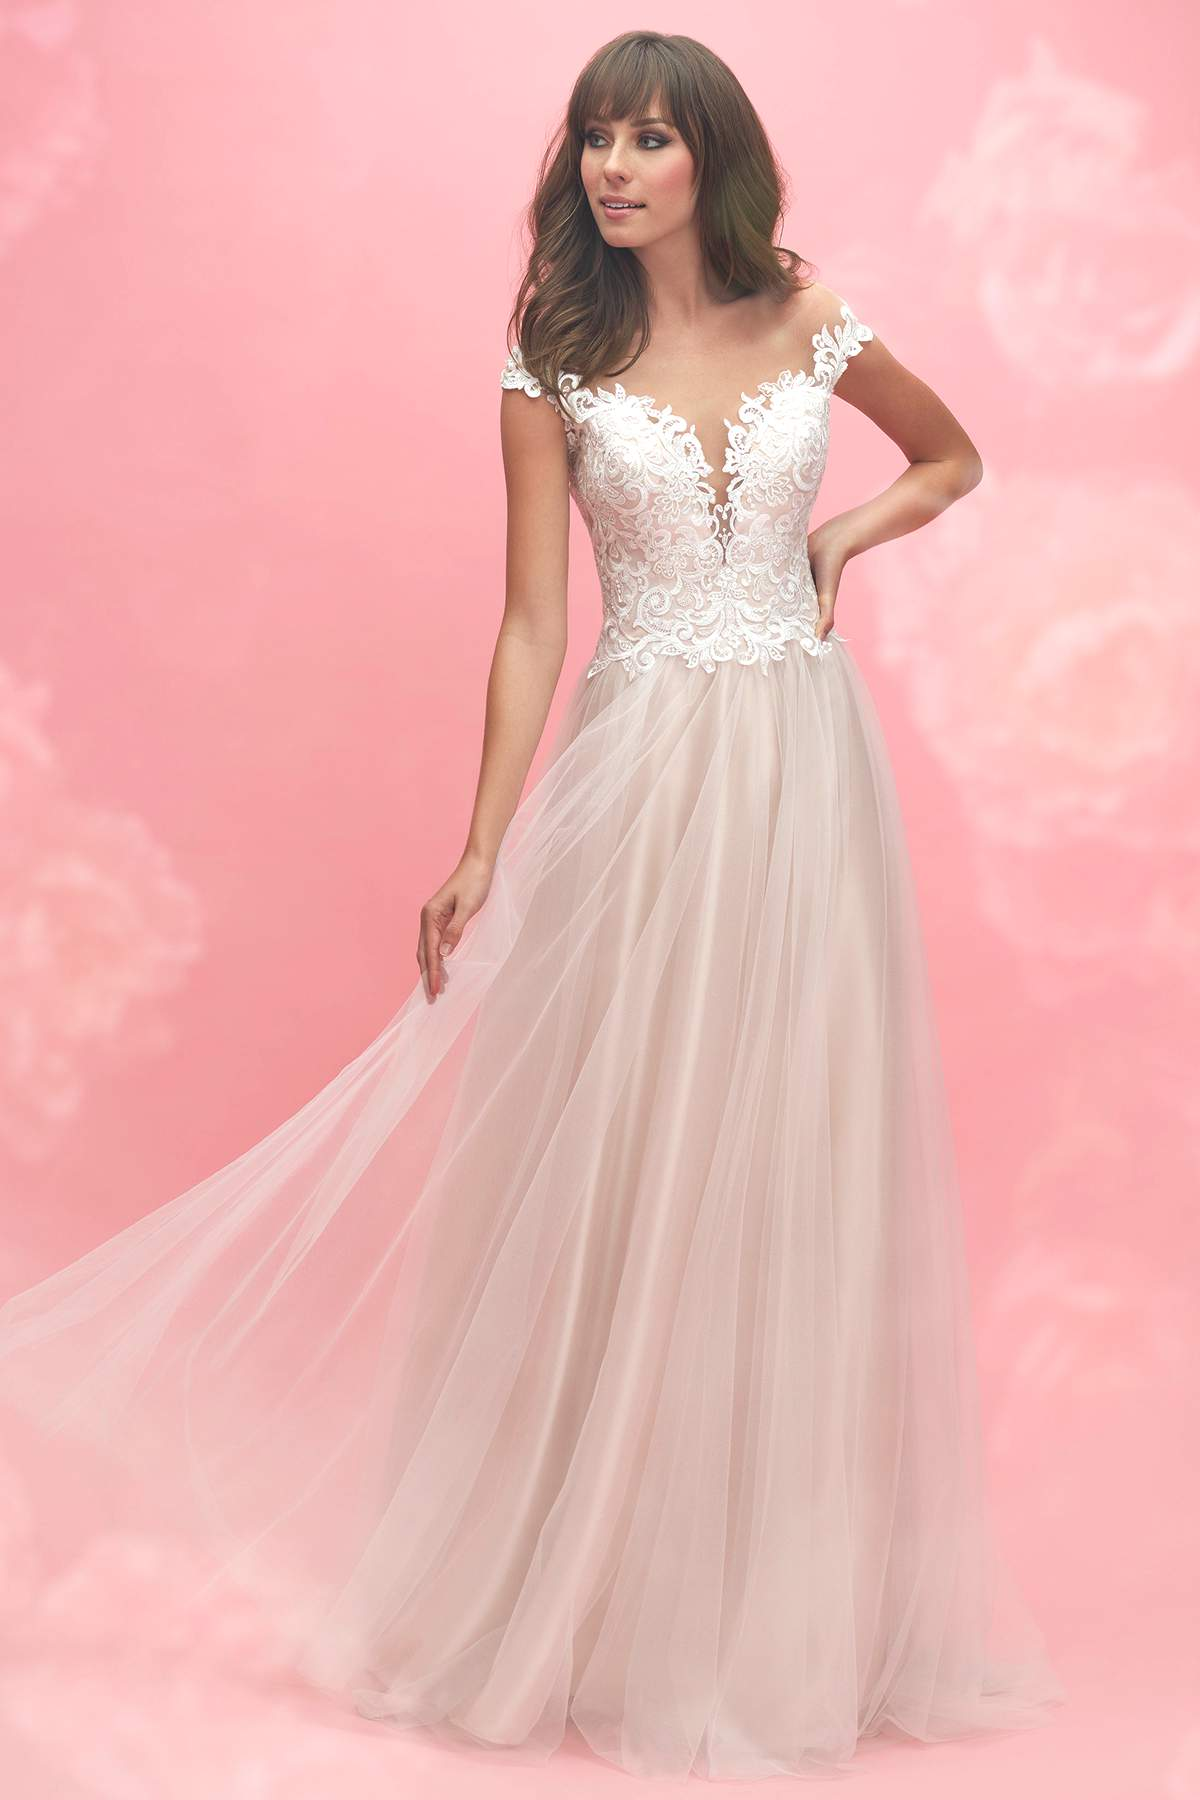 Style 3052 by Allure Romance - Find Your Dream Dress